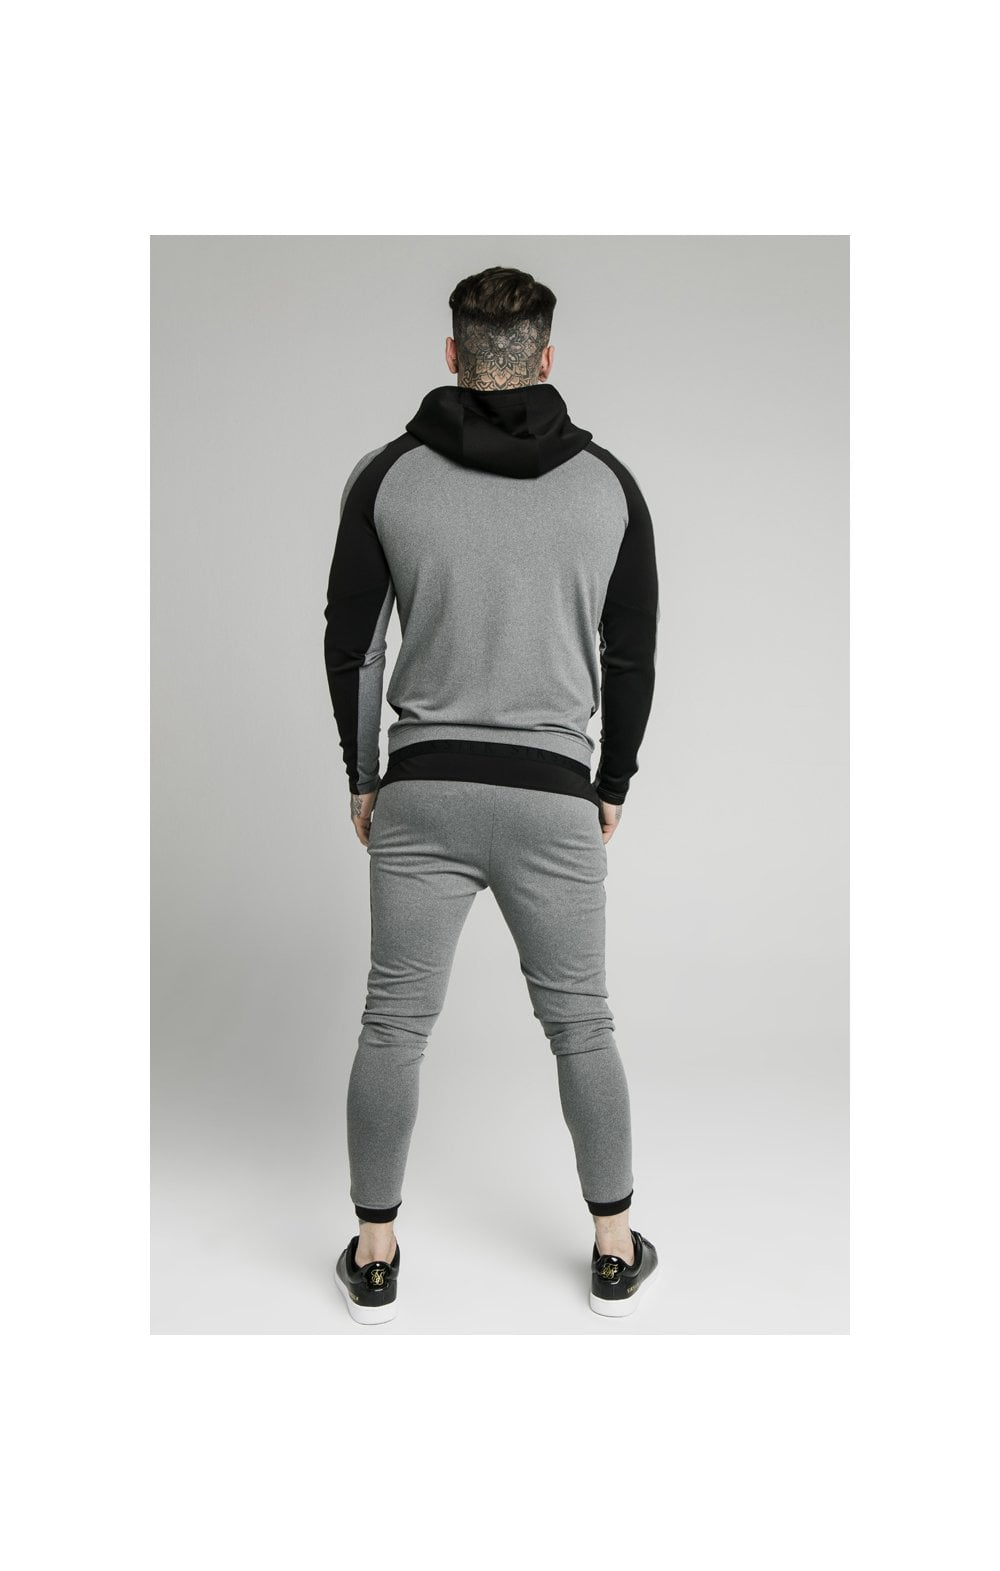 Load image into Gallery viewer, SikSilk Endurance Overhead Hoodie – Grey & Black (2)